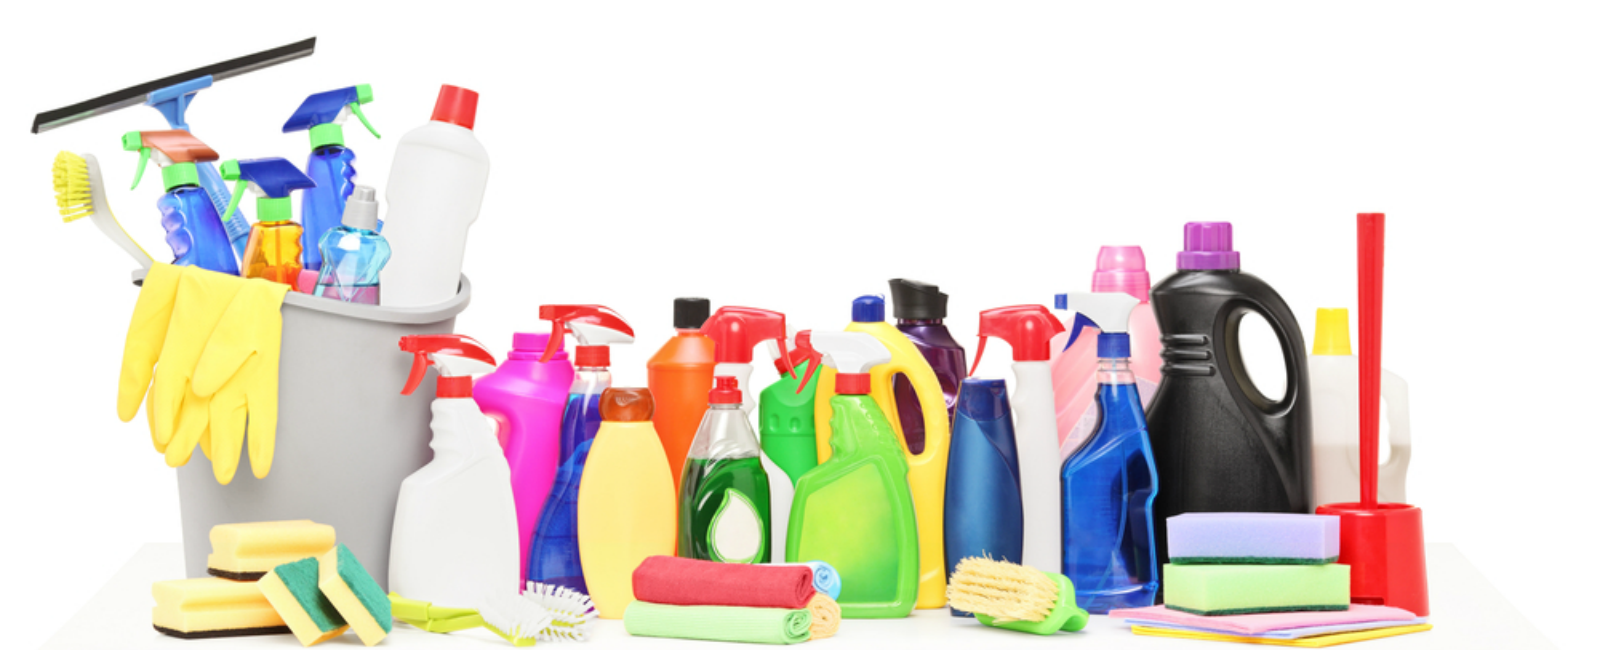 Distributor of Quality Cleaning Products